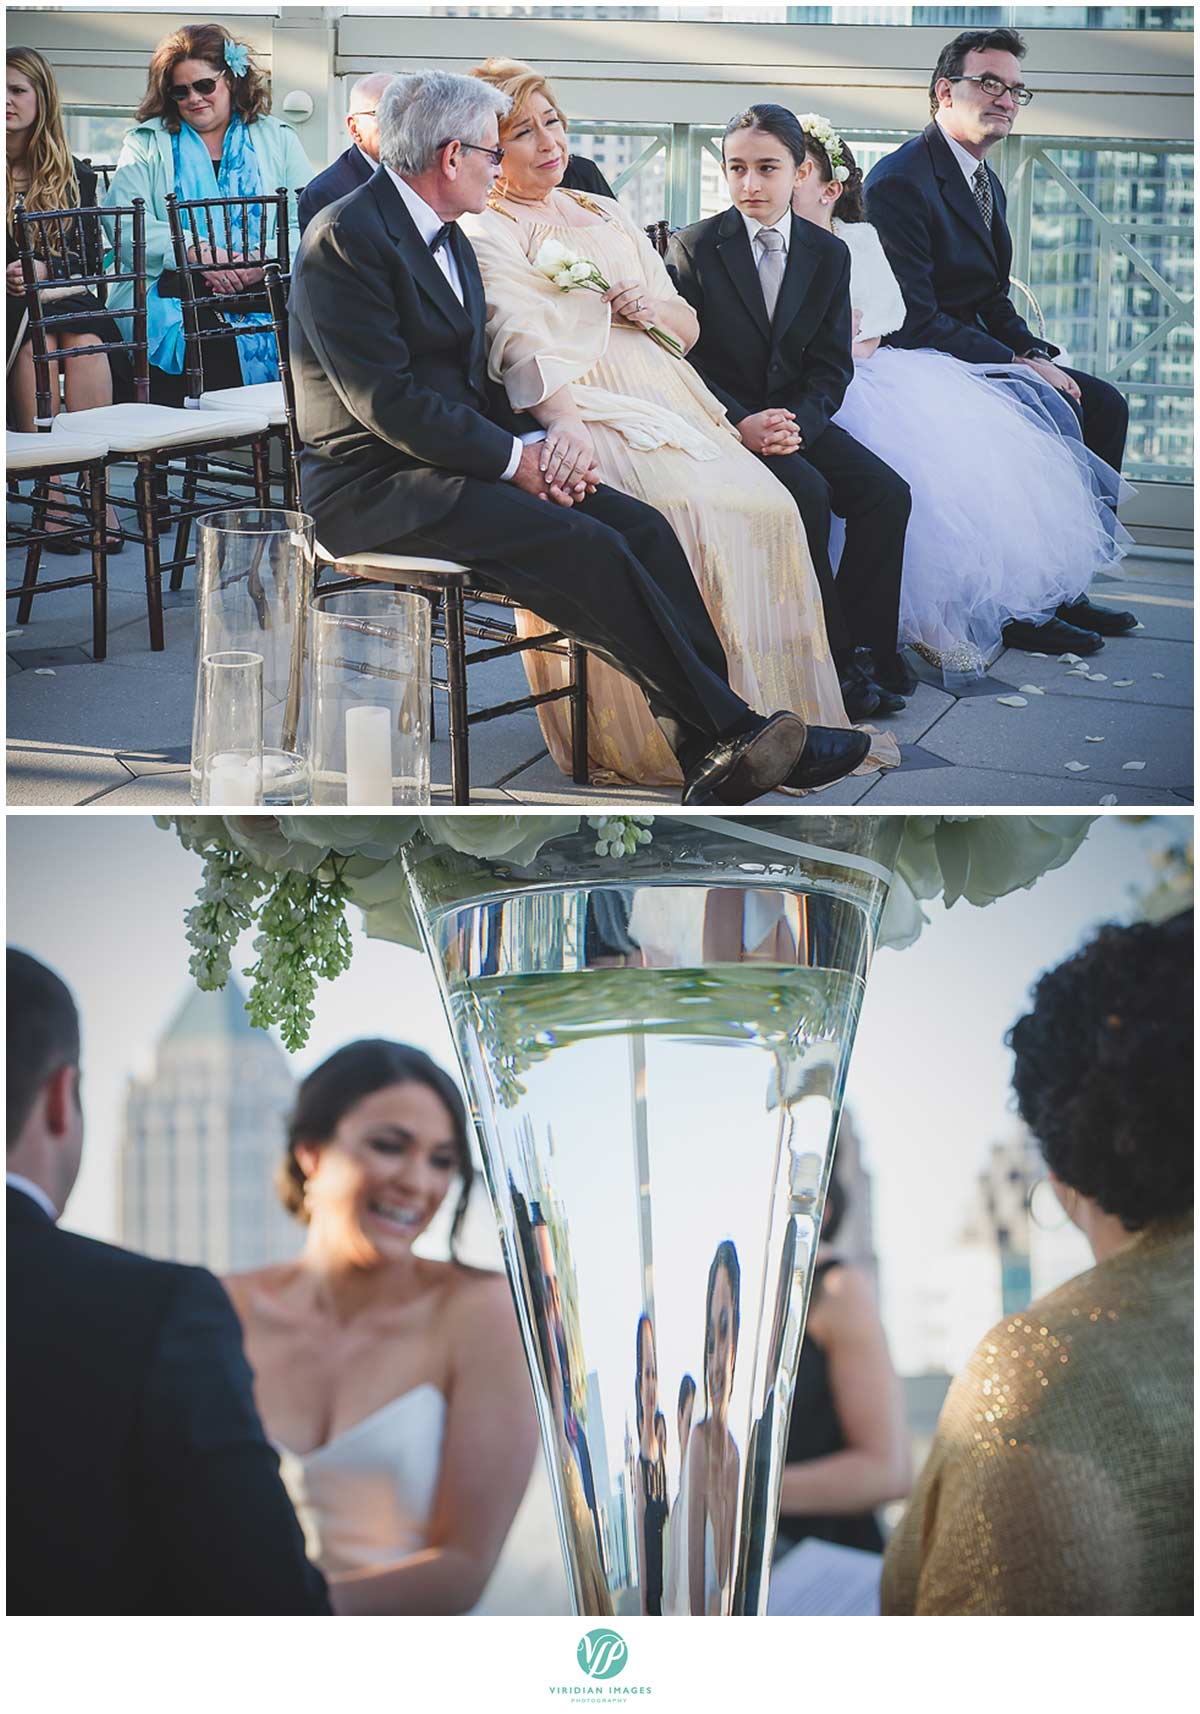 Peachtree_Club_Atlanta_Wedding_Viridian_Images_Photography-27